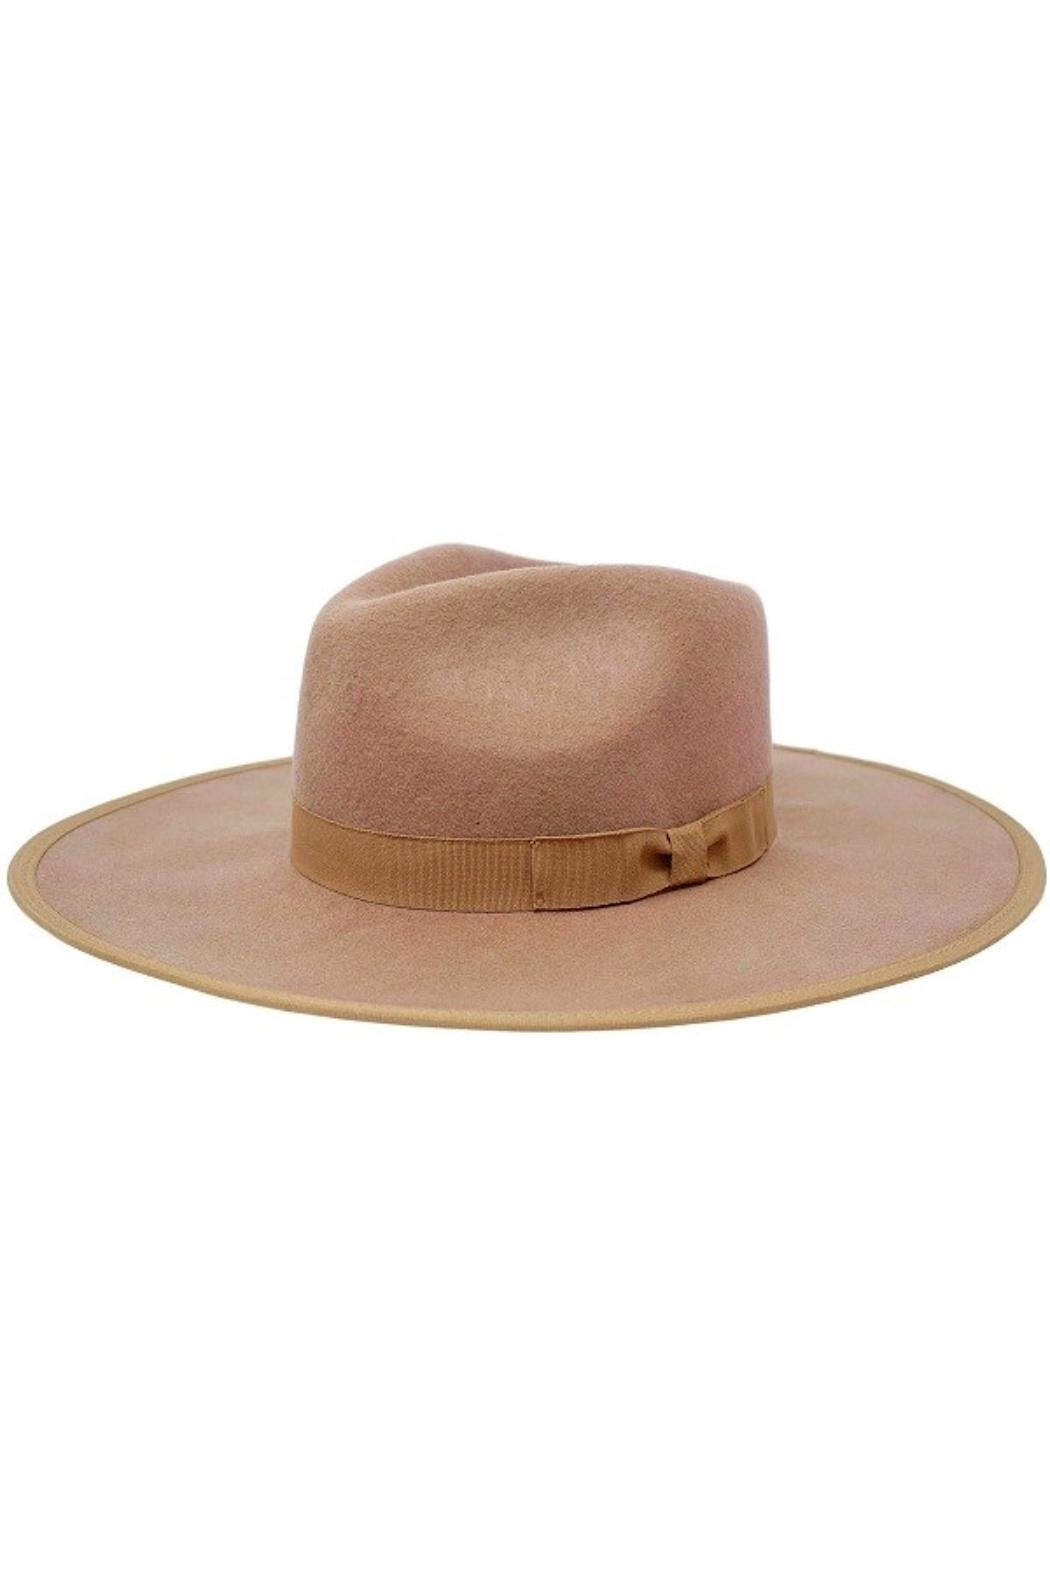 olive and pique Barrymore Rancher Hat - Main Image